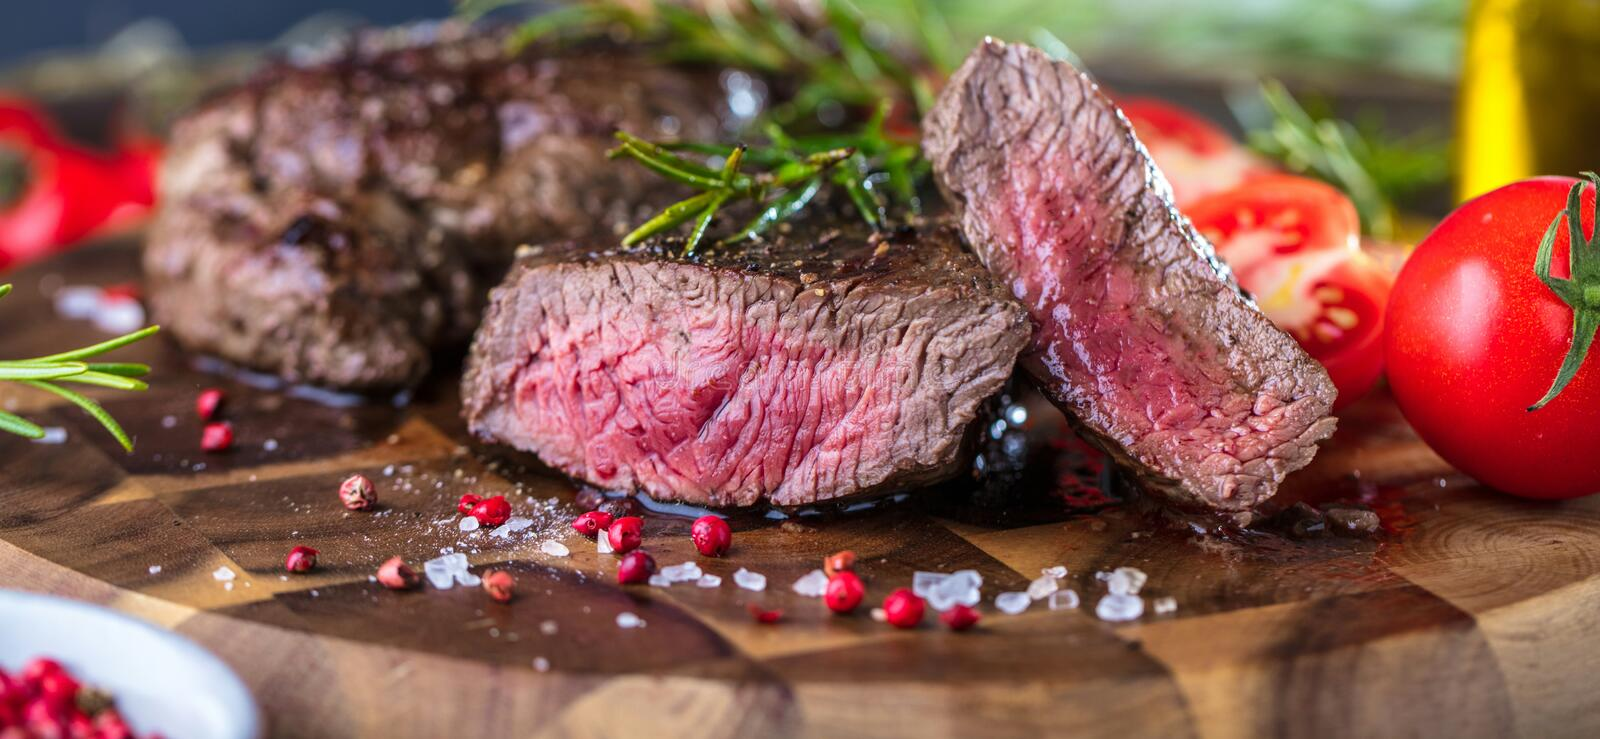 Fresh Juicy Medium Rare Beef Grillsteak. Barbecue Meat Close Up royalty free stock photo